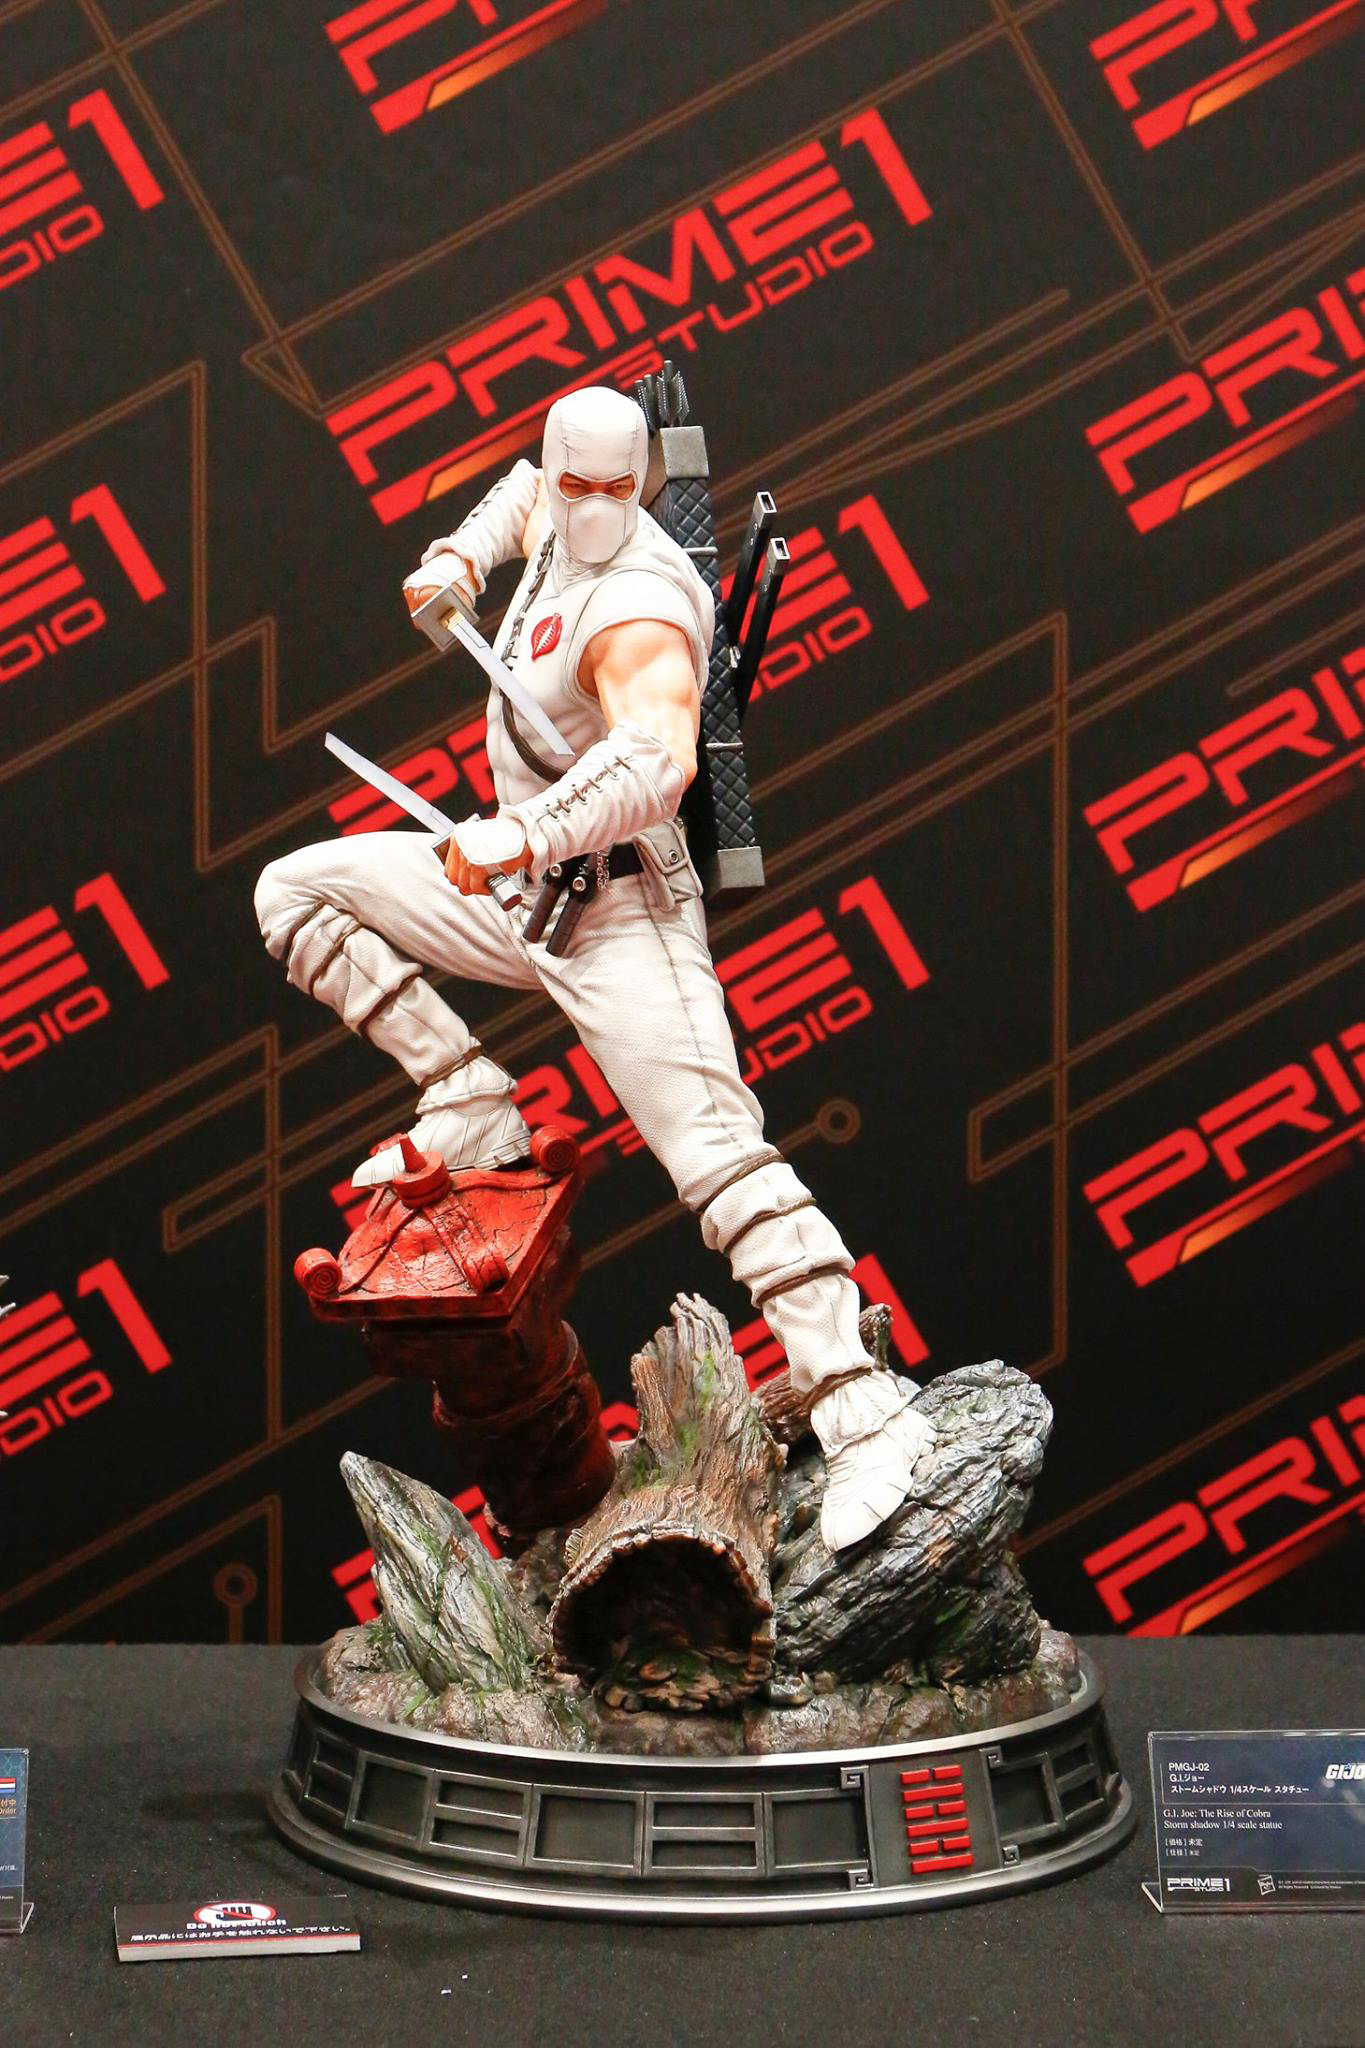 prime-1-studio-gi-joe-storm-shadow-statue